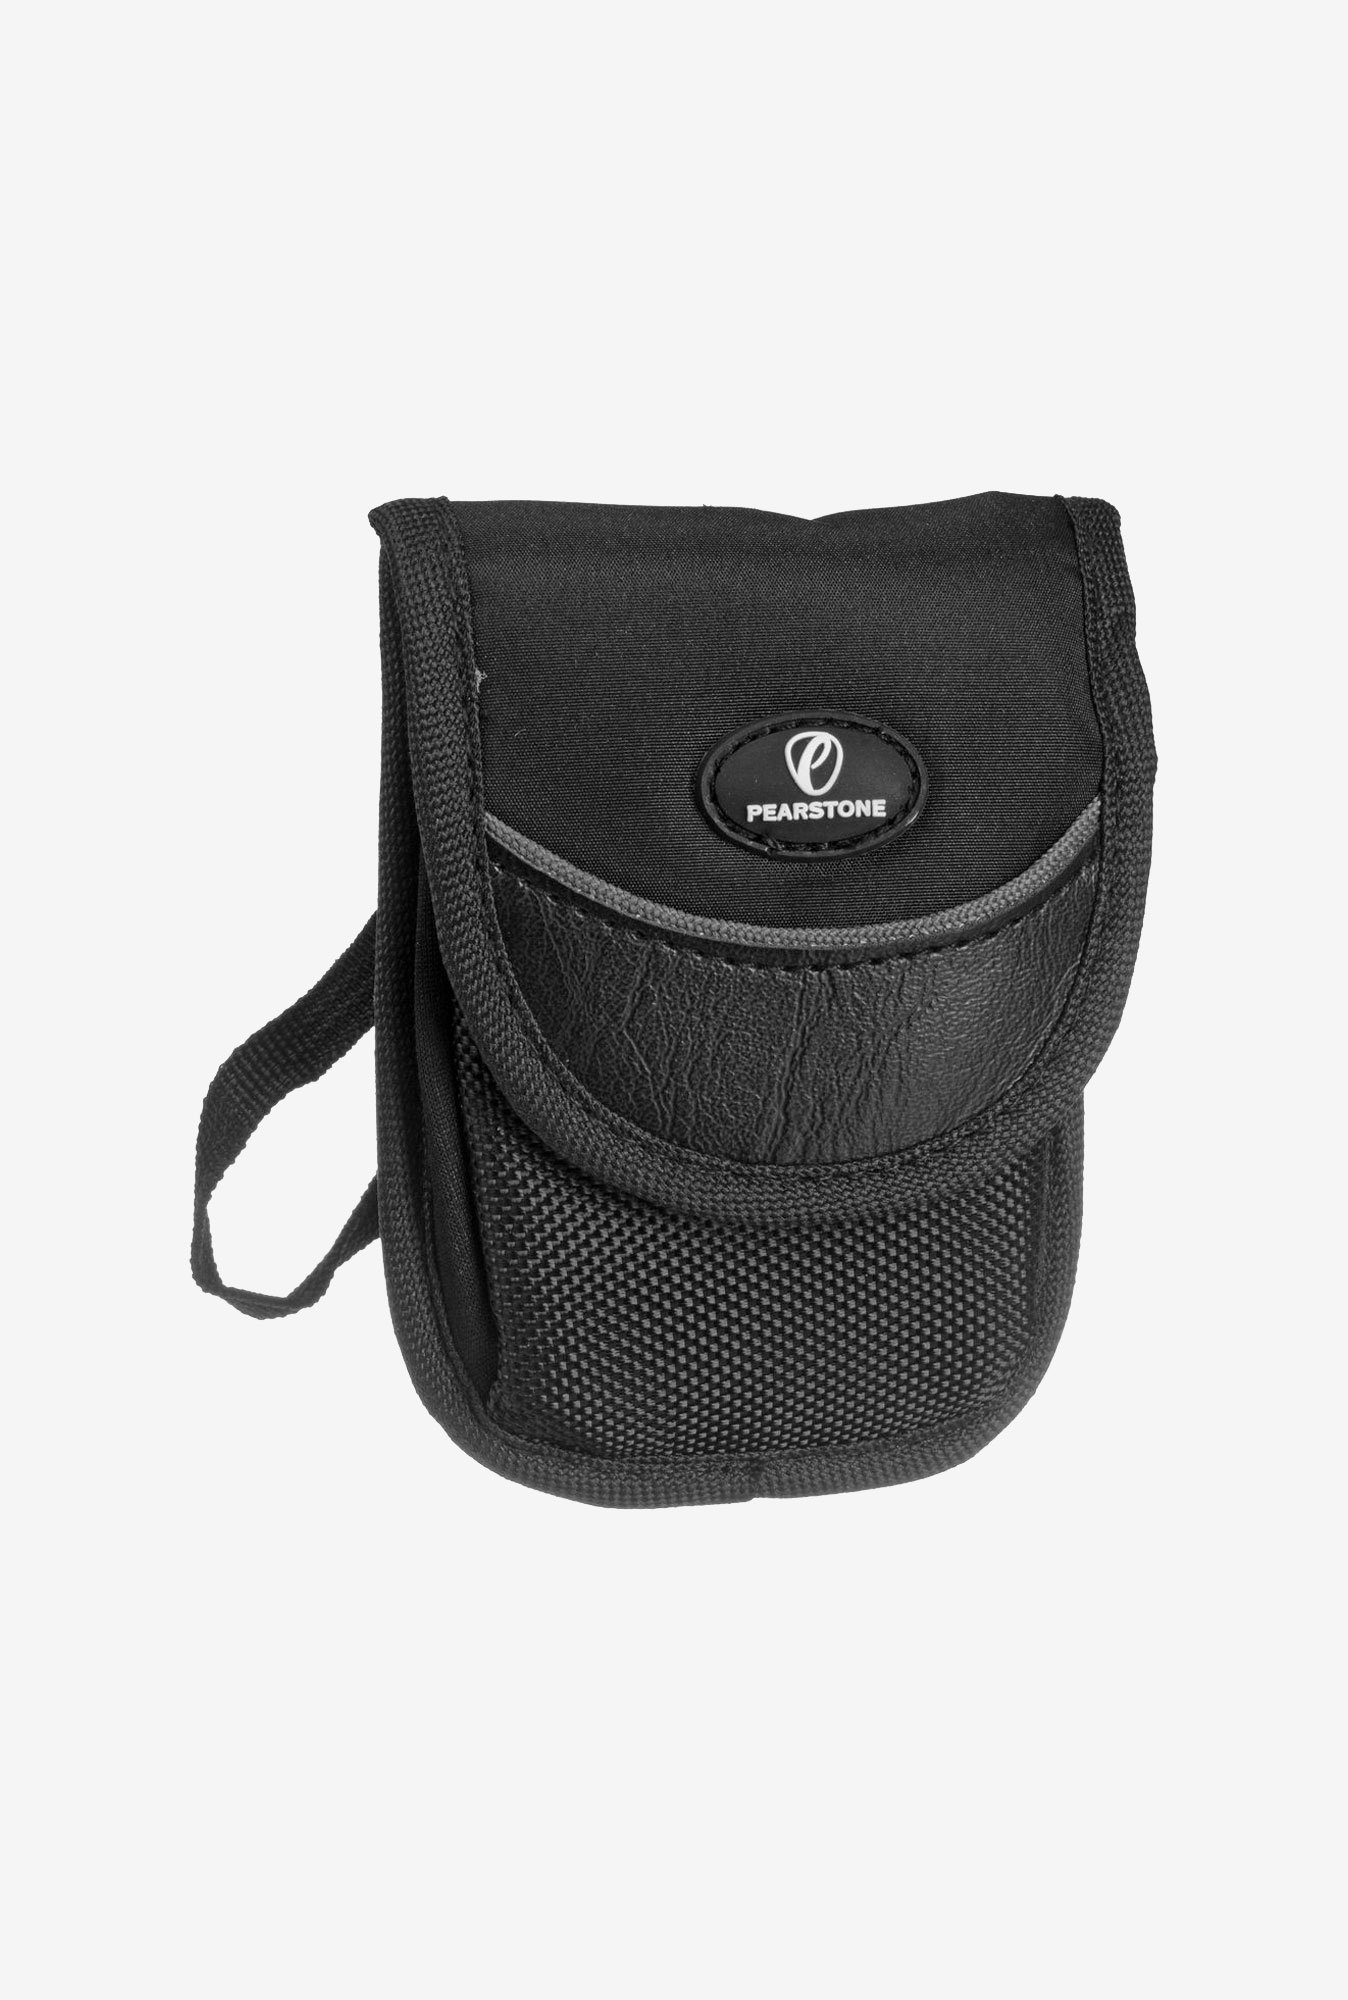 Pearstone Onyx 210 Camera Pouch (Black)